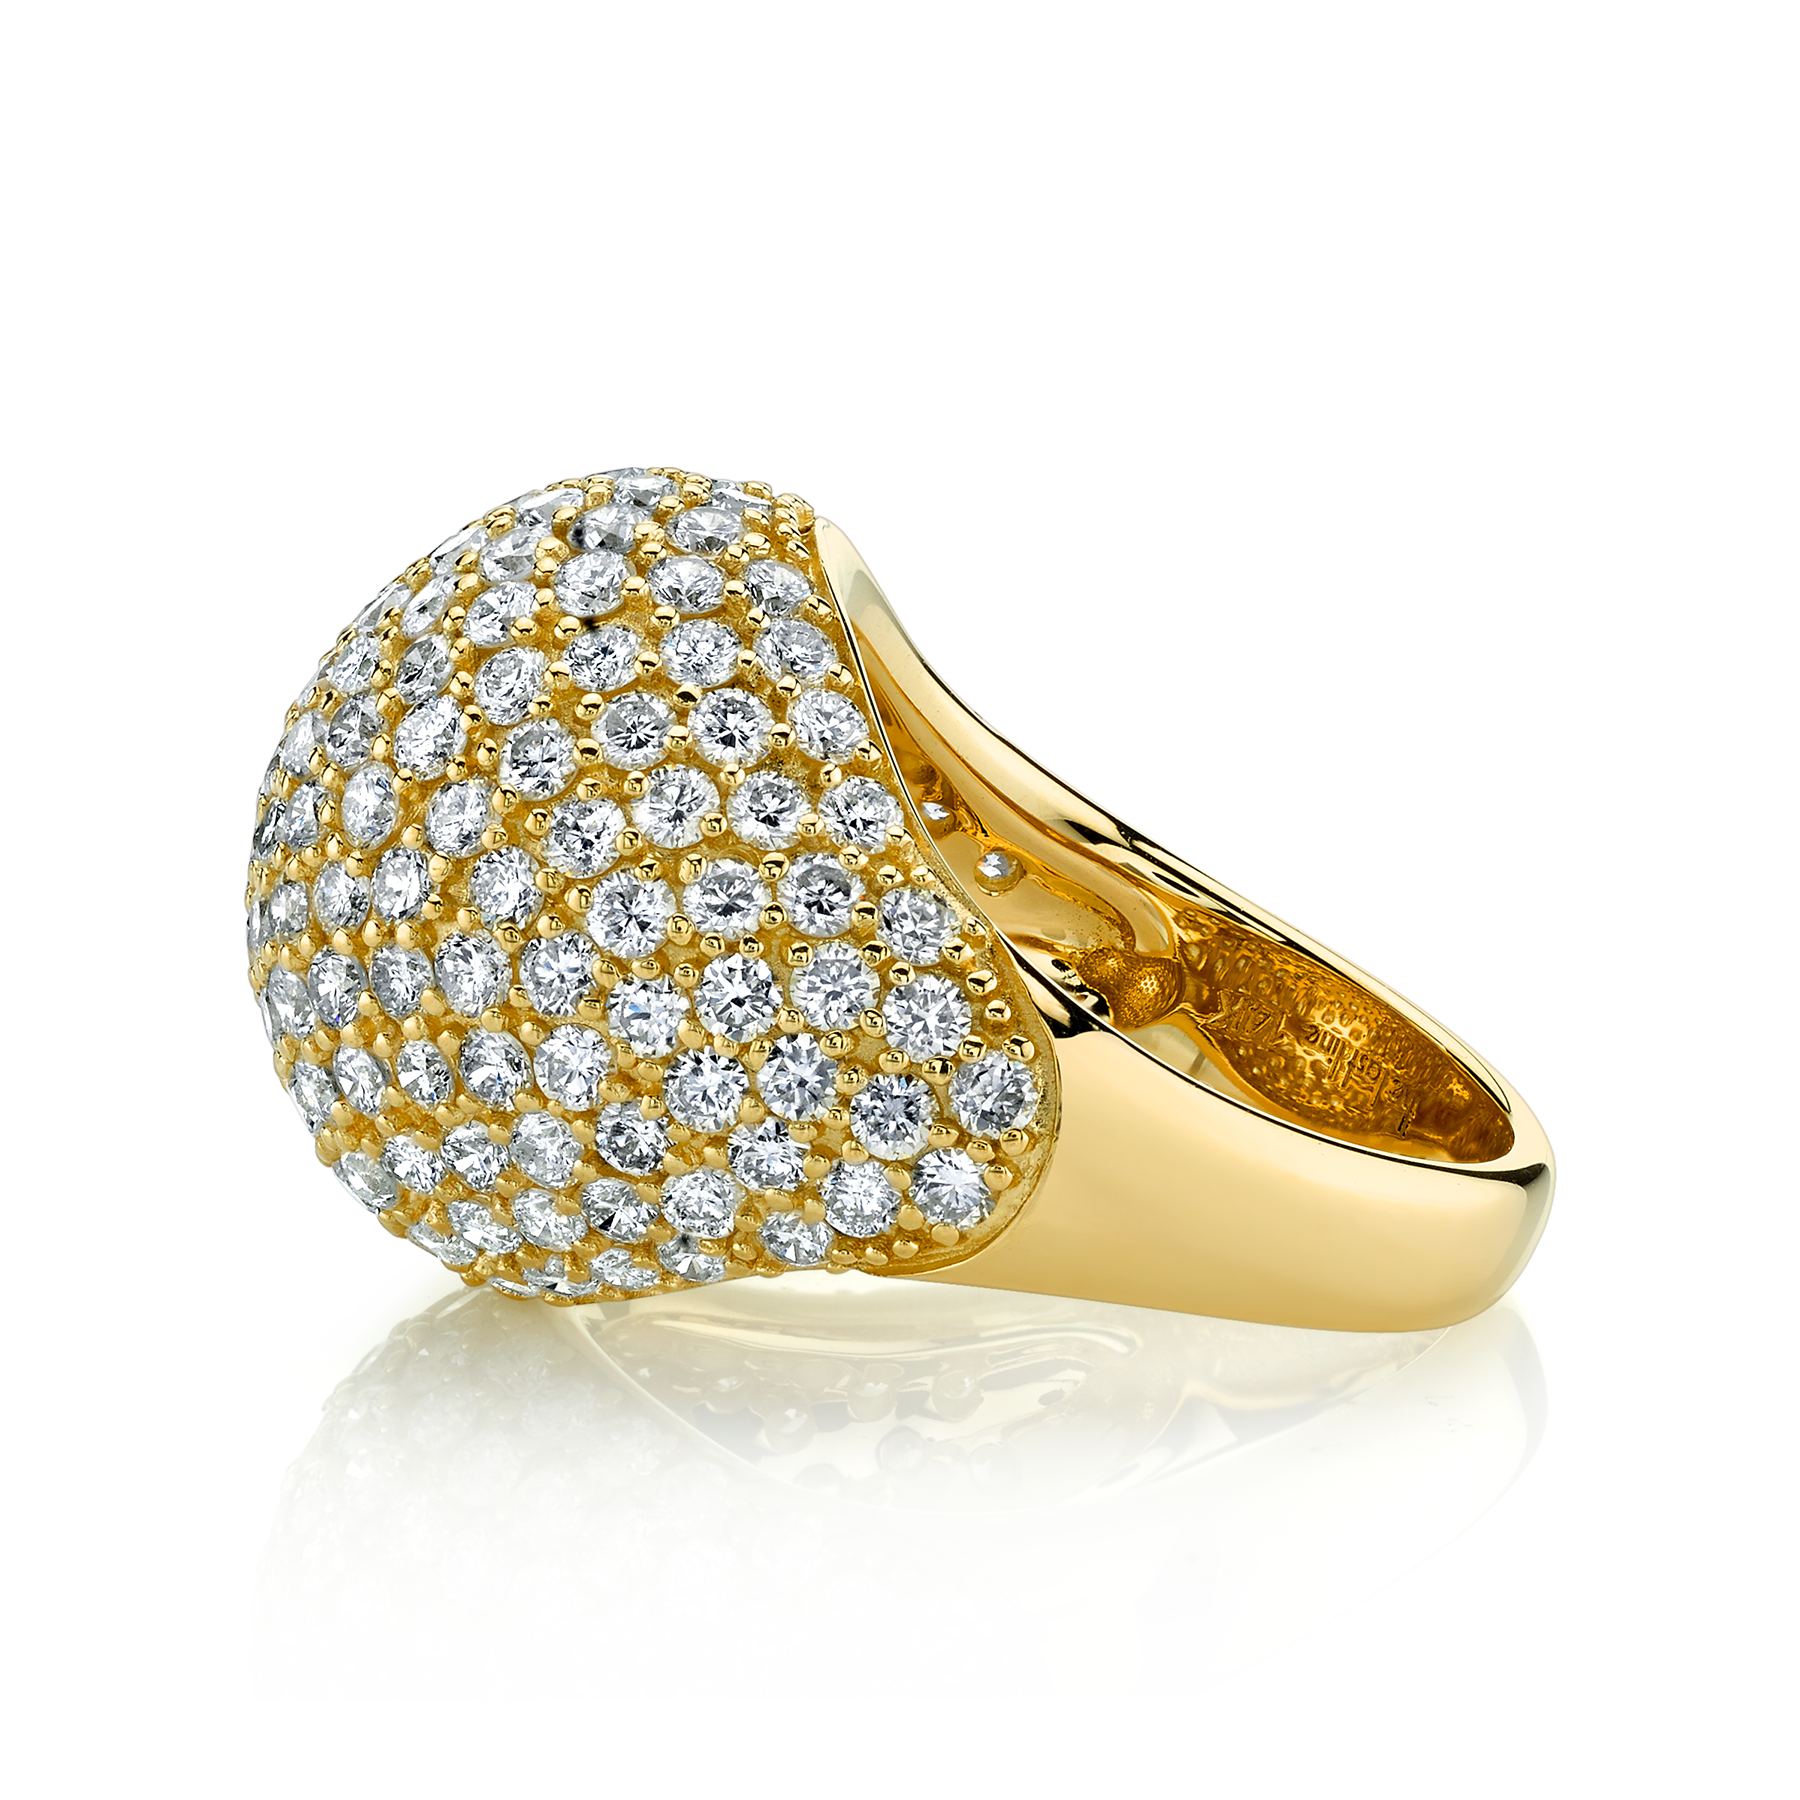 DIAMOND BOMBE RING, 5, 14K YELLOW GOLD